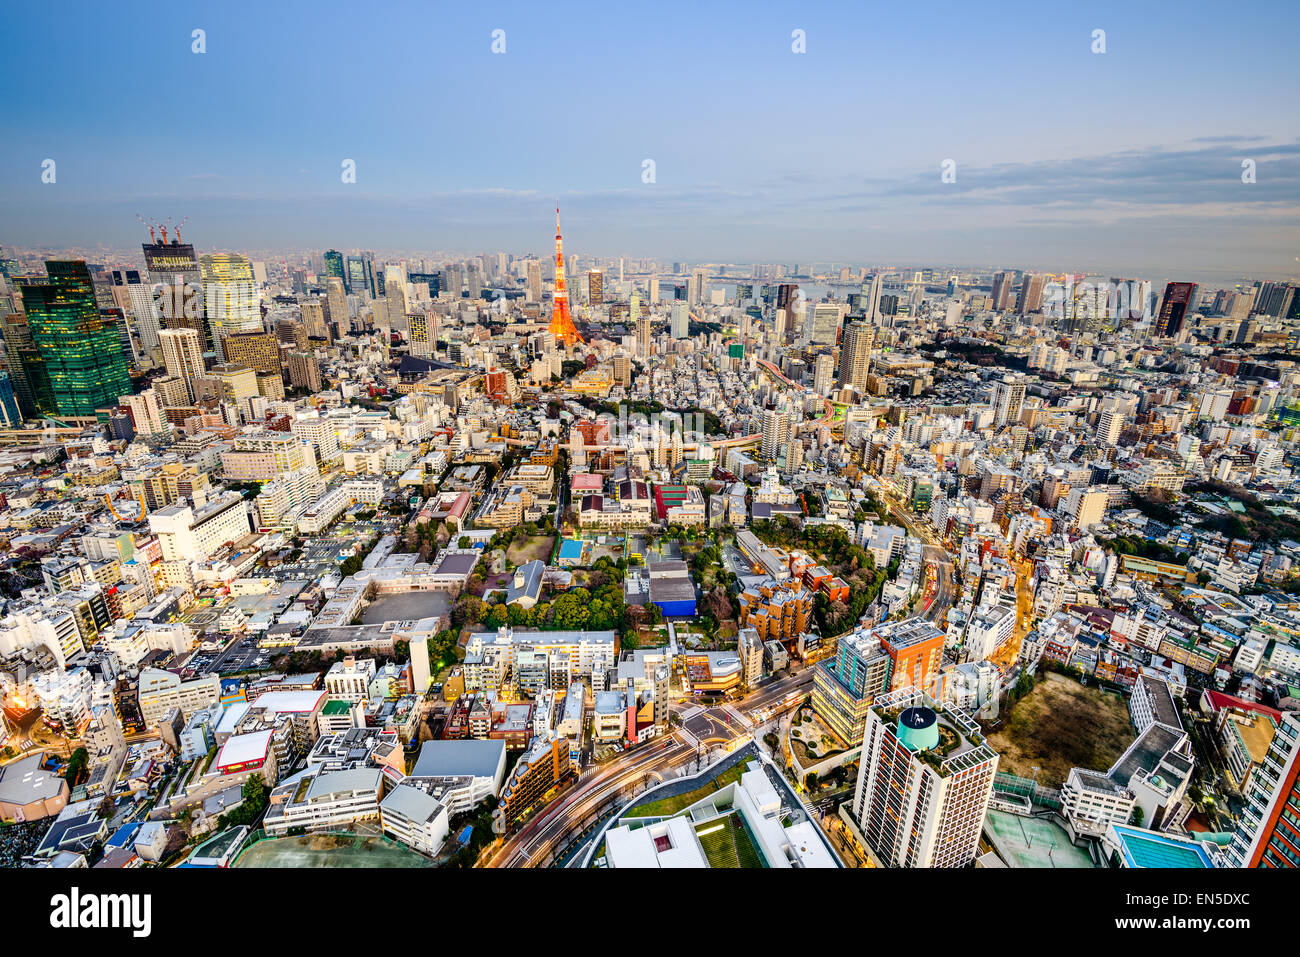 Tokyo, Japan cityscape. - Stock Image